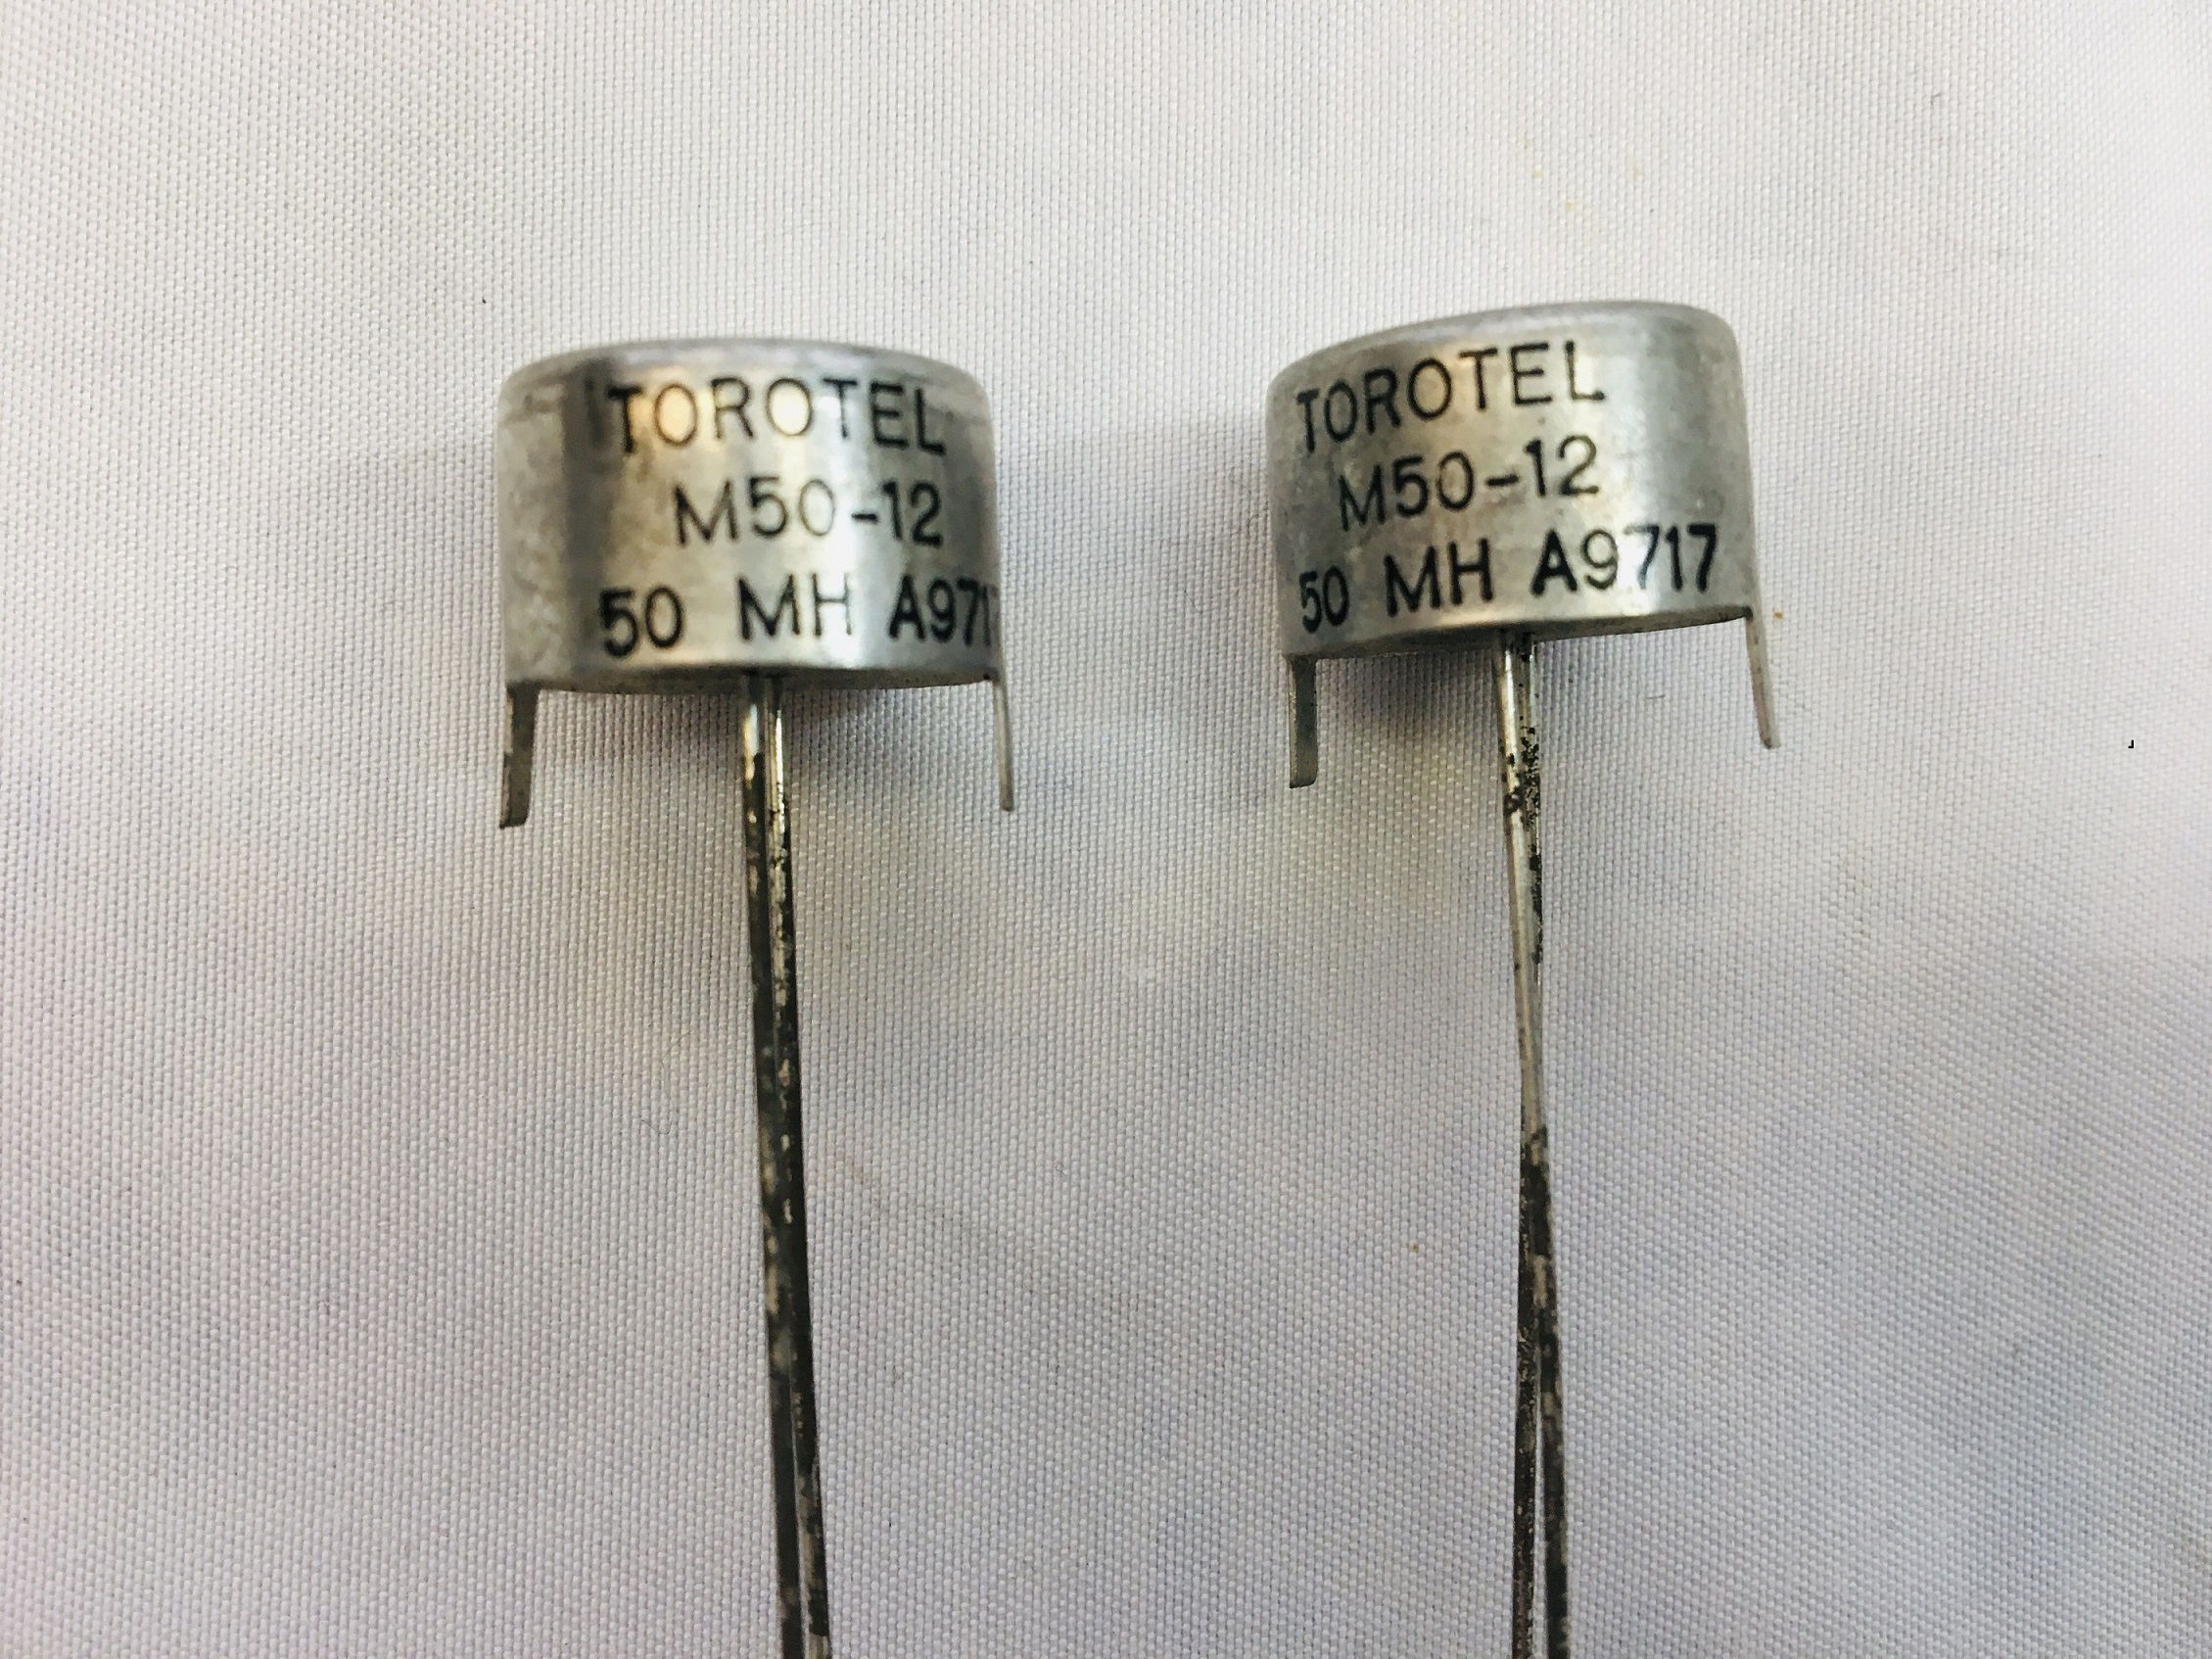 Inductor Torotel Inc. M50-12, 50MH